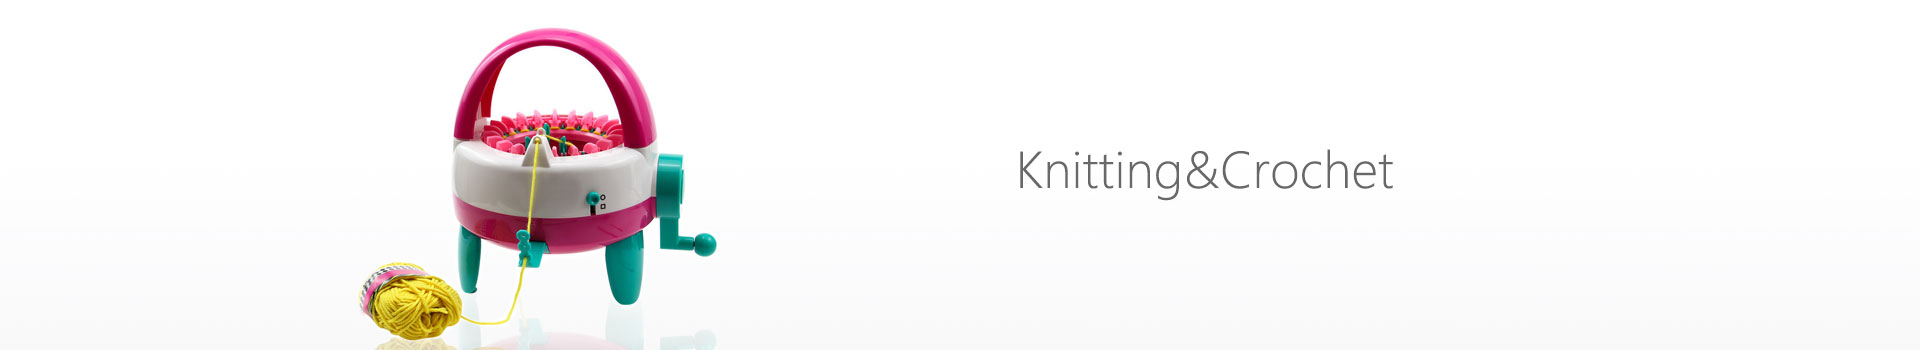 knitting&crochet